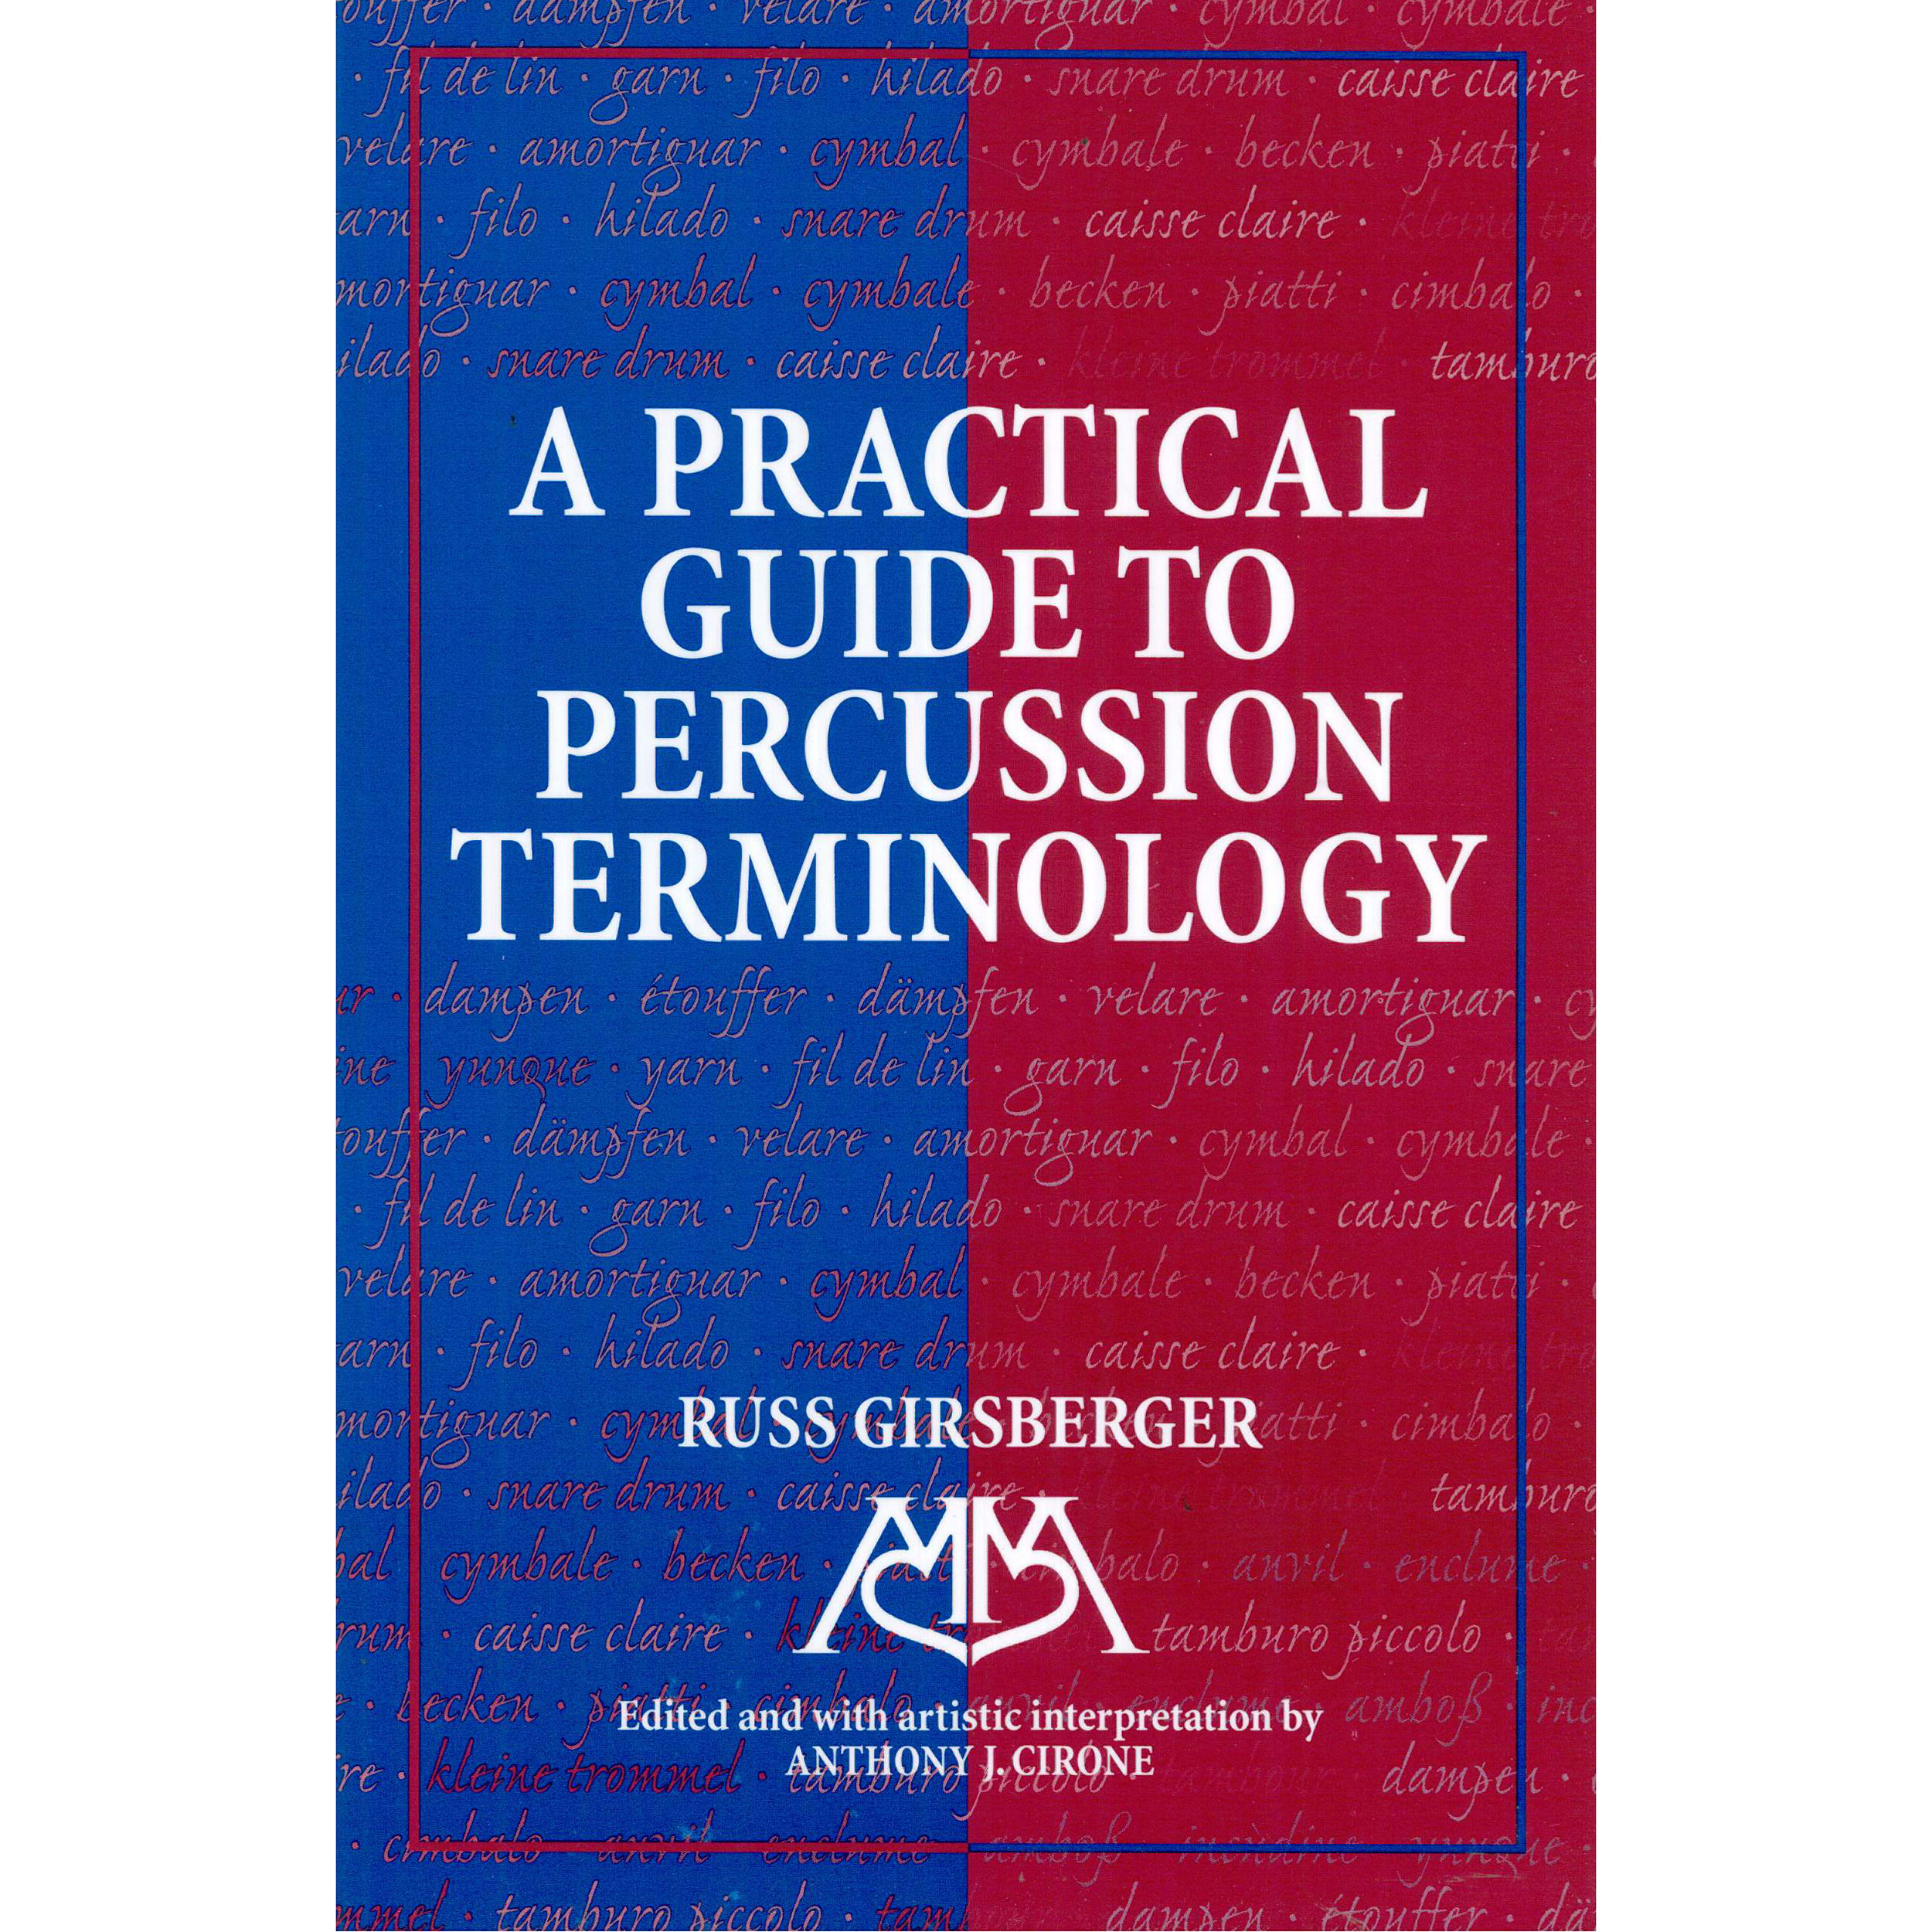 A Practical Guide to Percussion Terminology by Russ Girsberger